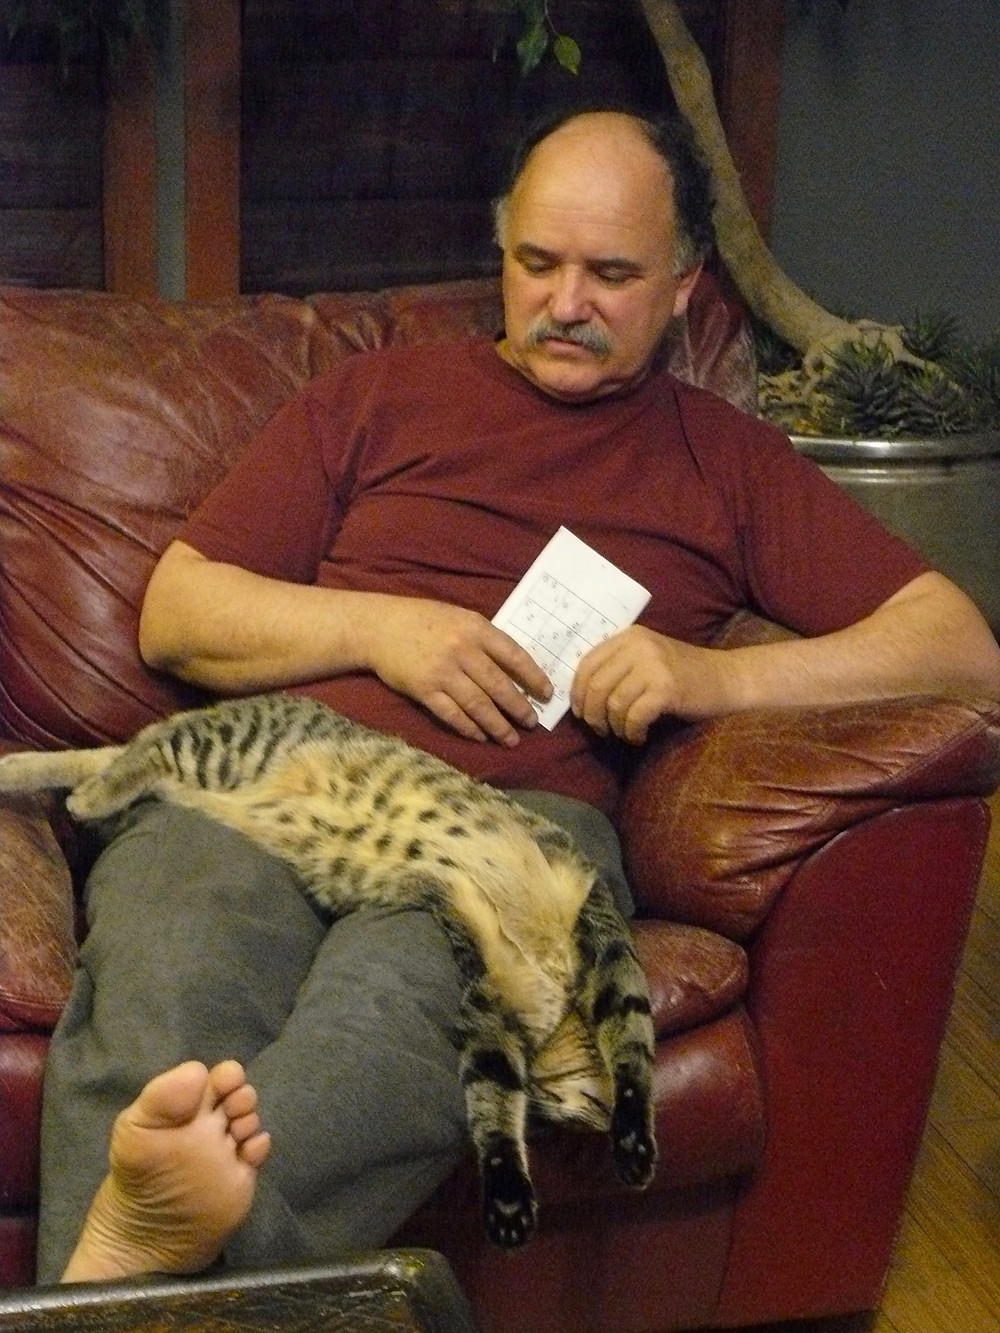 man sitting on couch with feet up and sleeping cat draped liberally over/off of thighs